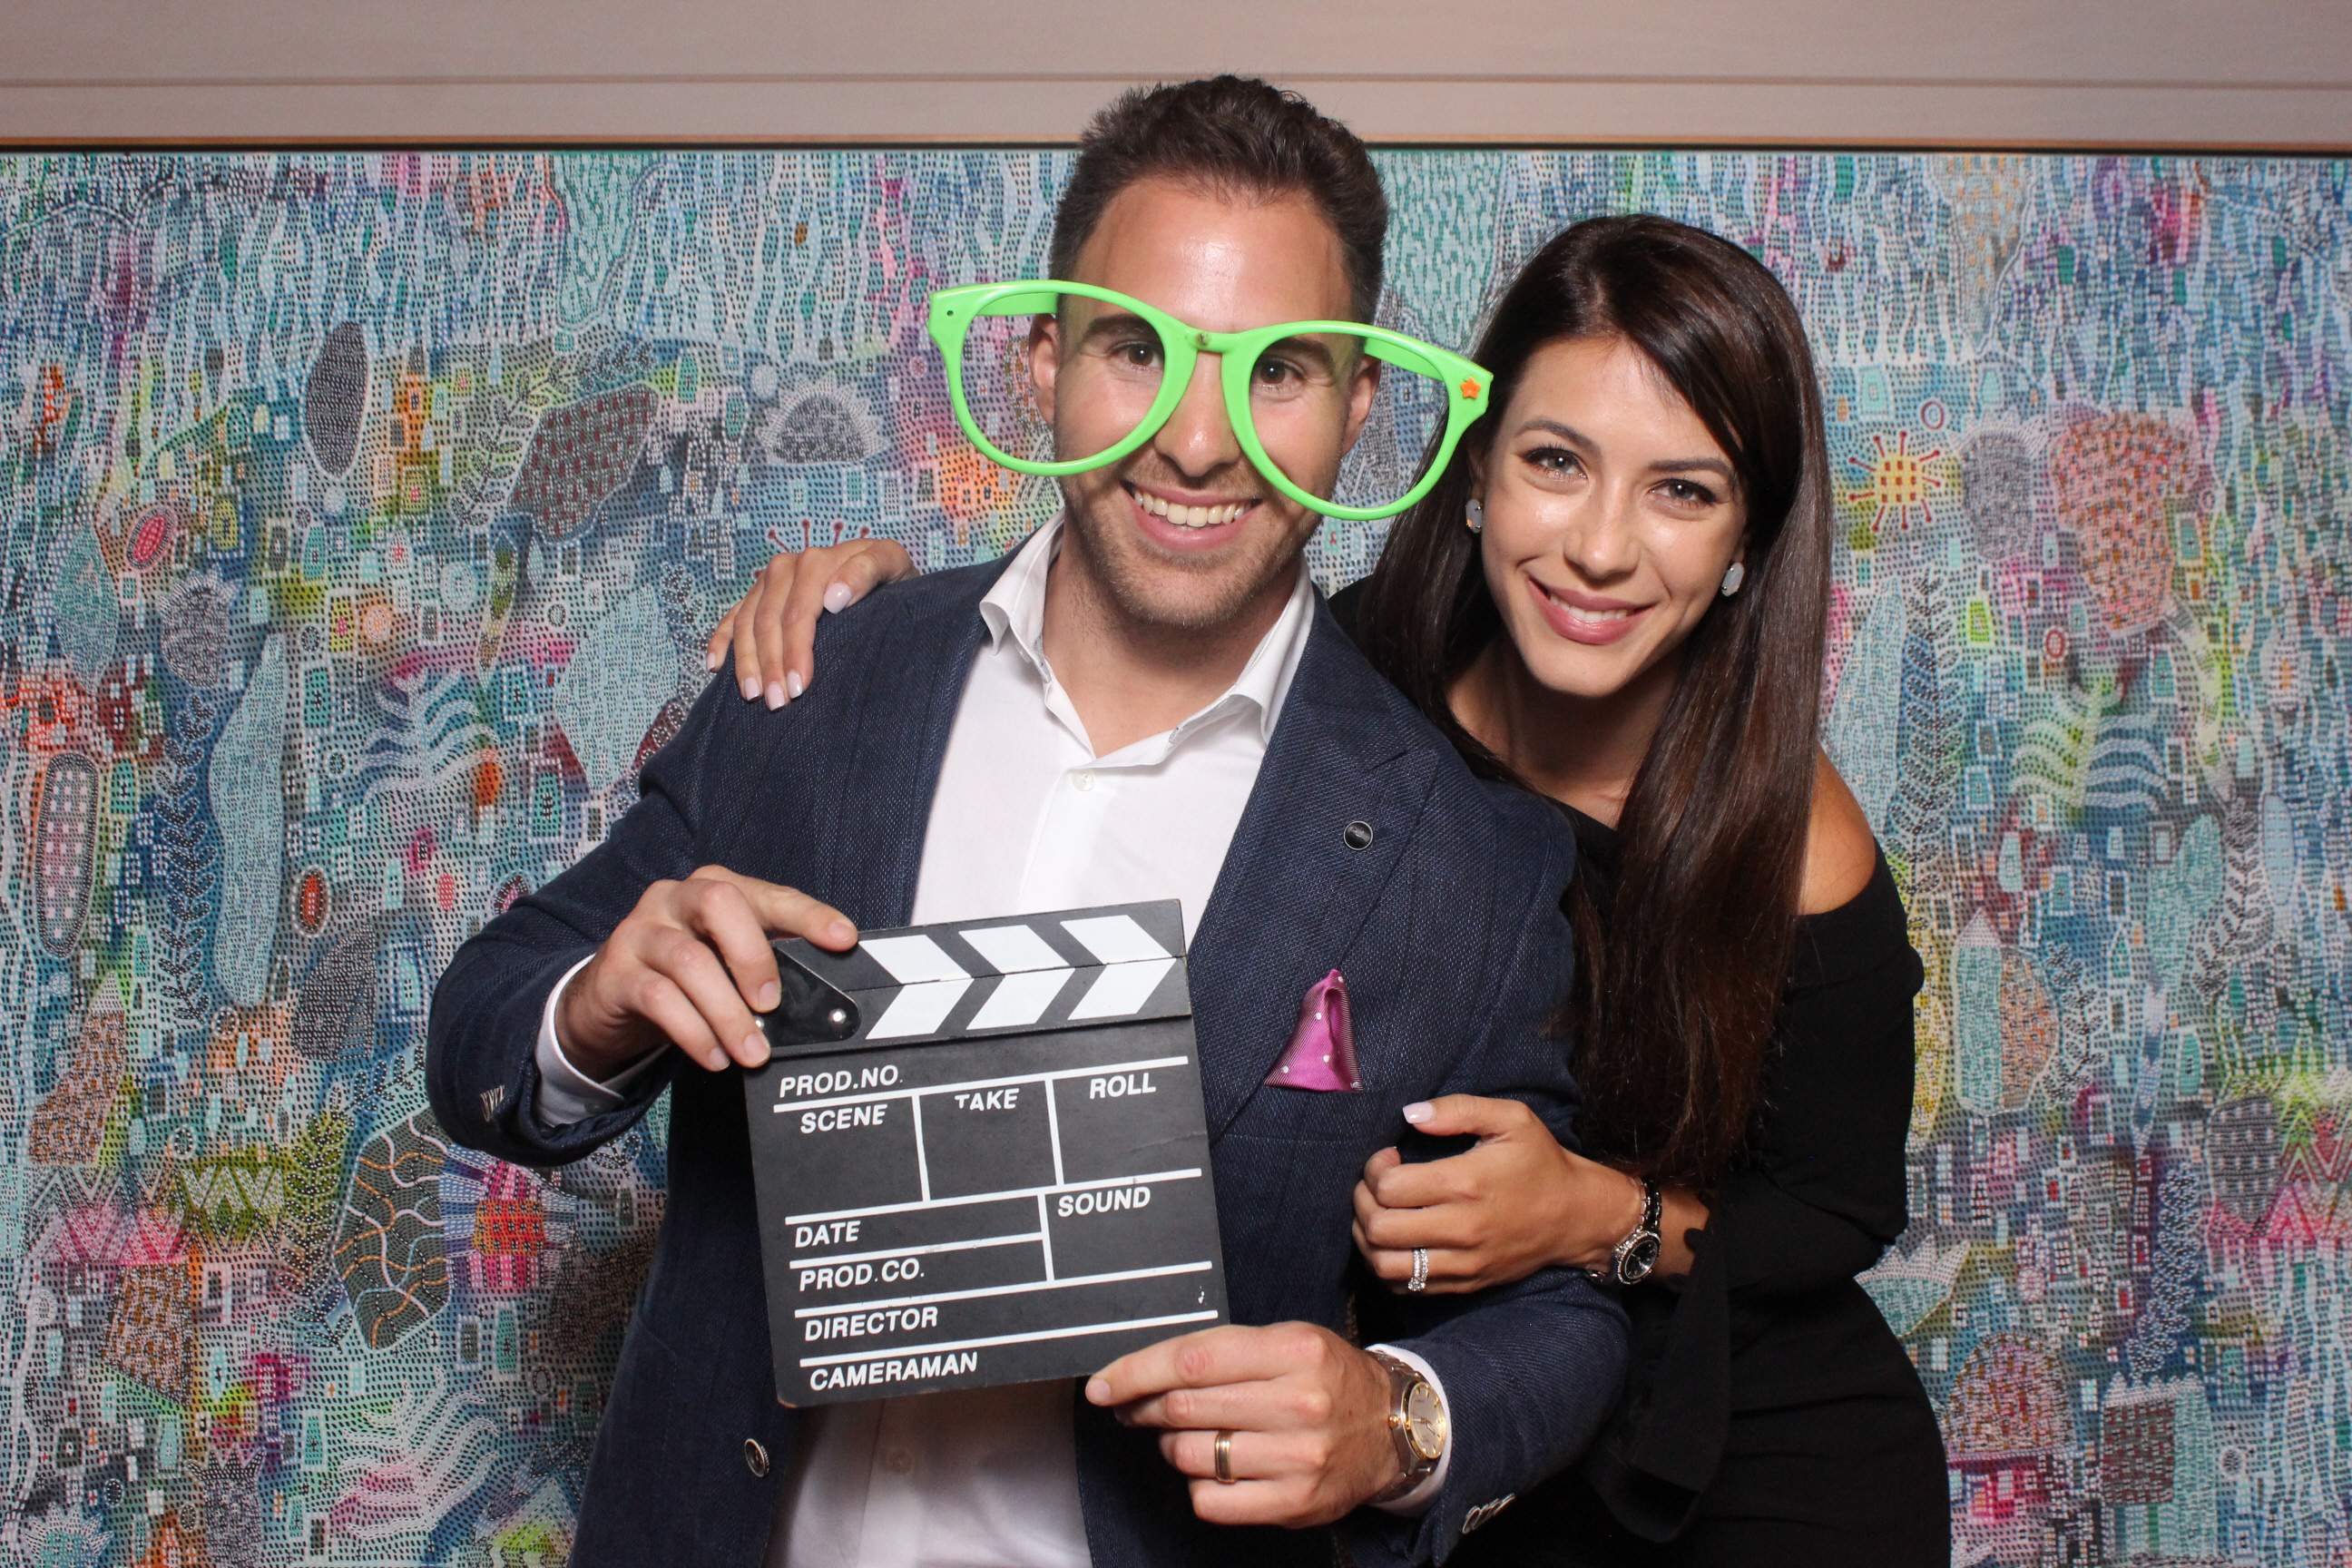 Event Photo Booth | Gif Booth Sydney | Fun Backdrops | Photo Booth Hire